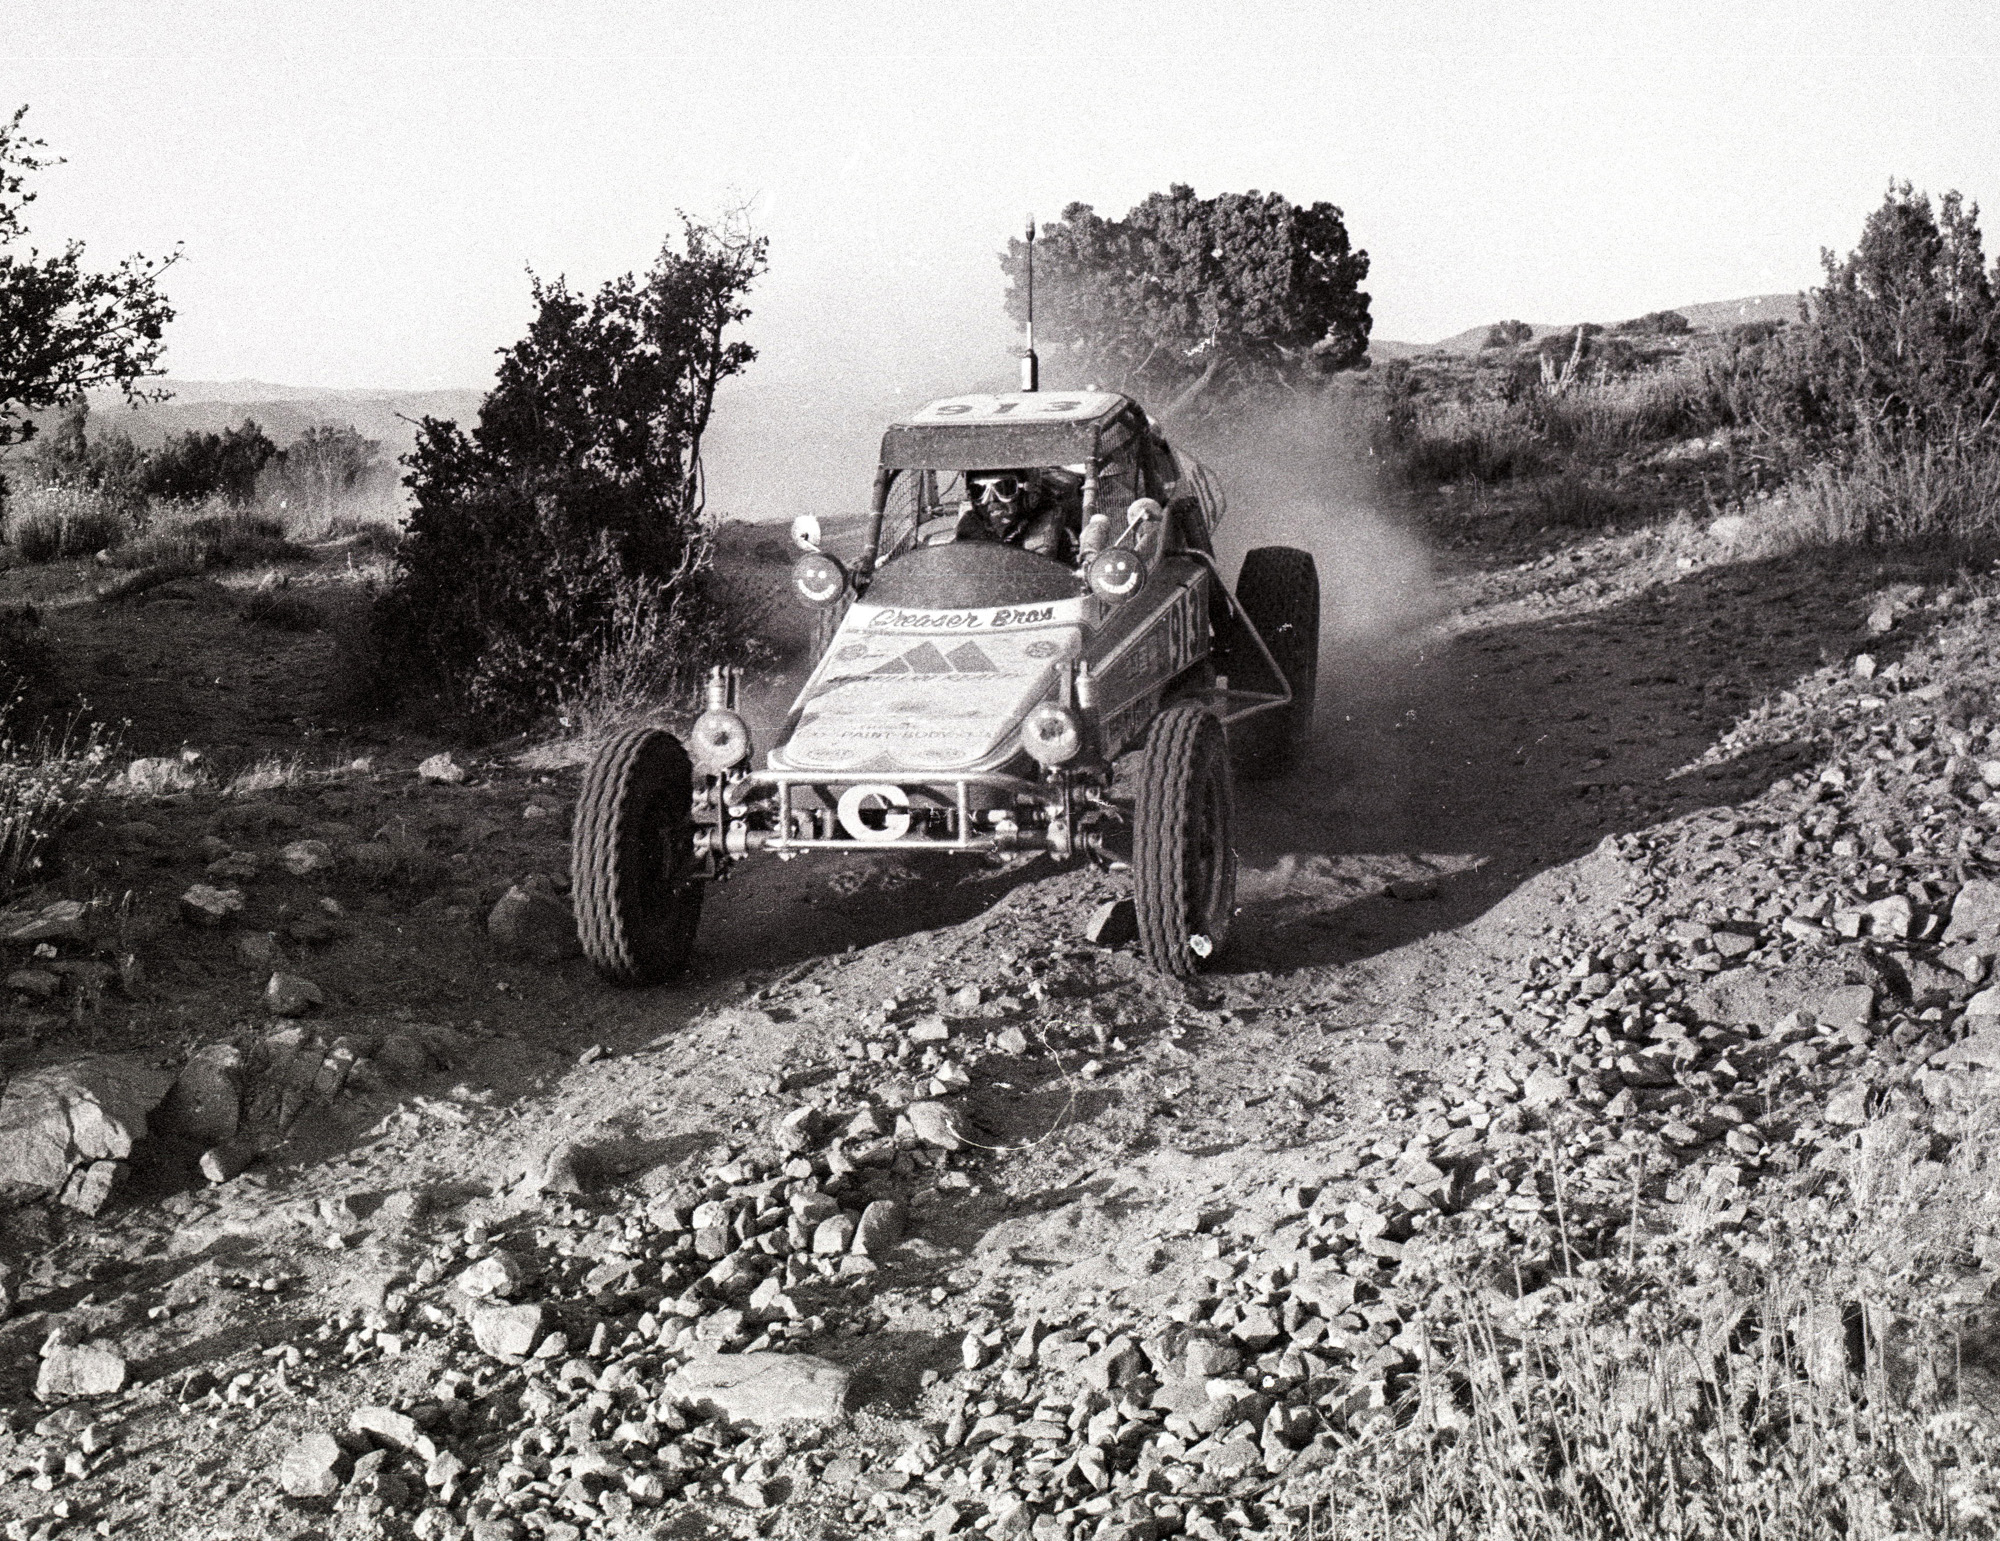 CenterlineImages.1978.Baja500.913.Greaser.mcmillin.21x.jpg